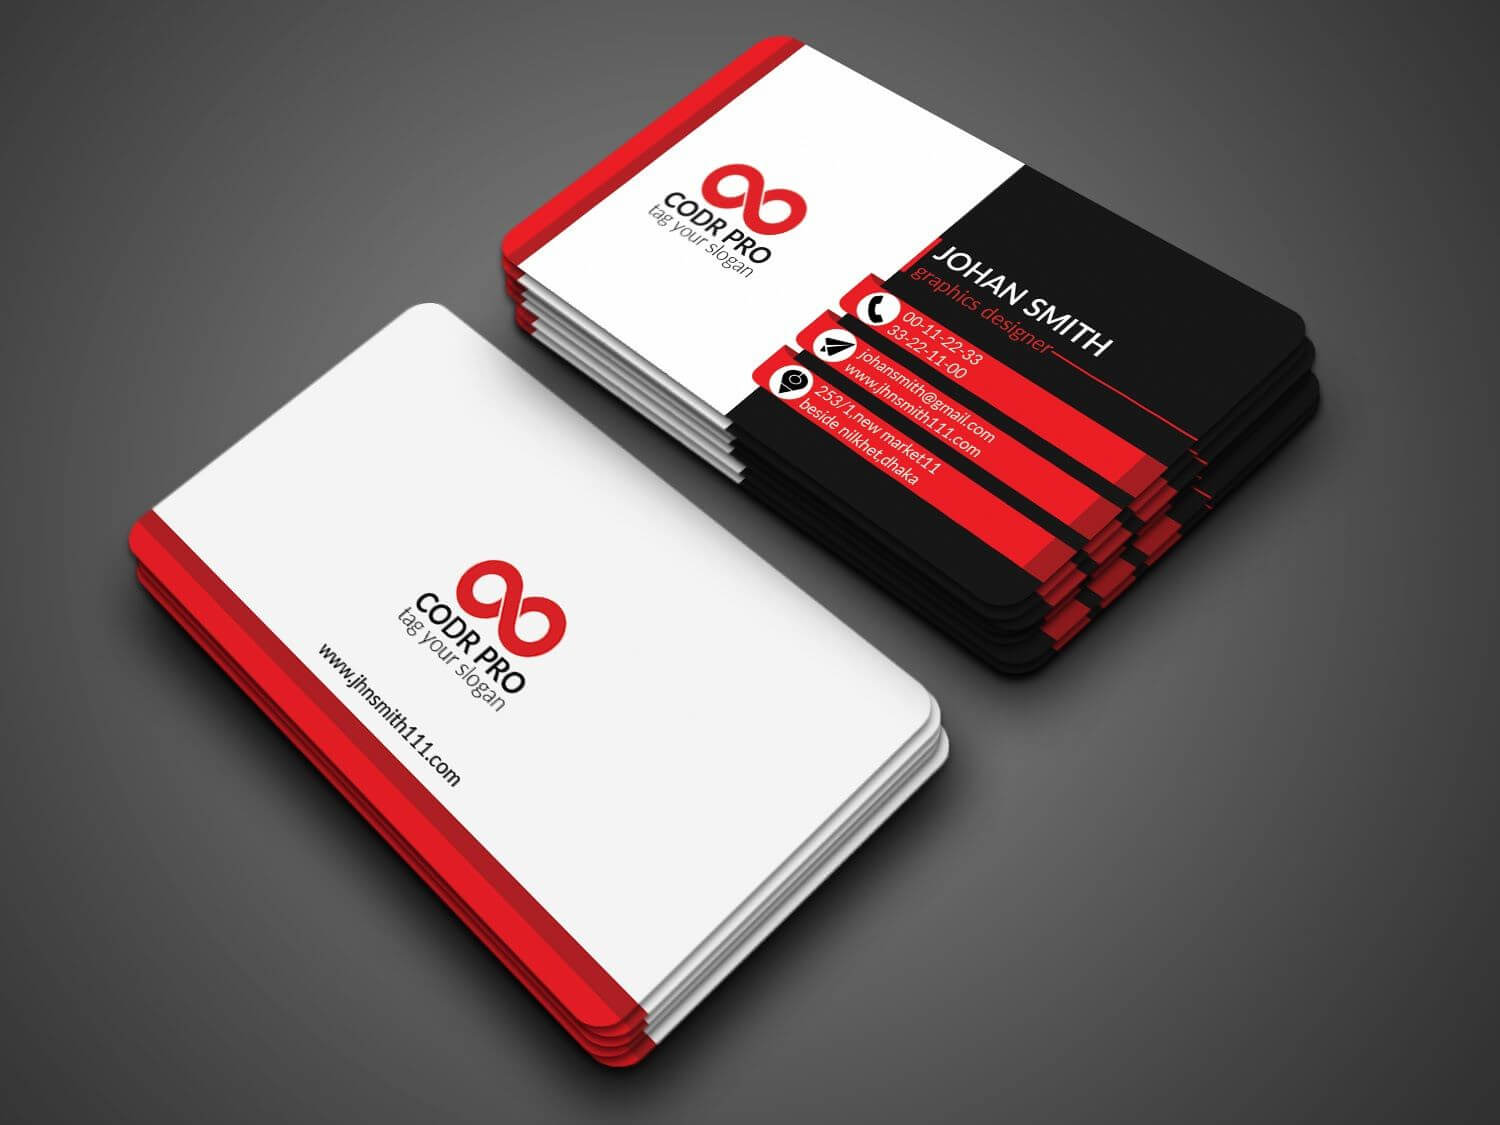 Professional Business Card Design In Photoshop Cs6 Tutorial With Business Card Template Photoshop Cs6